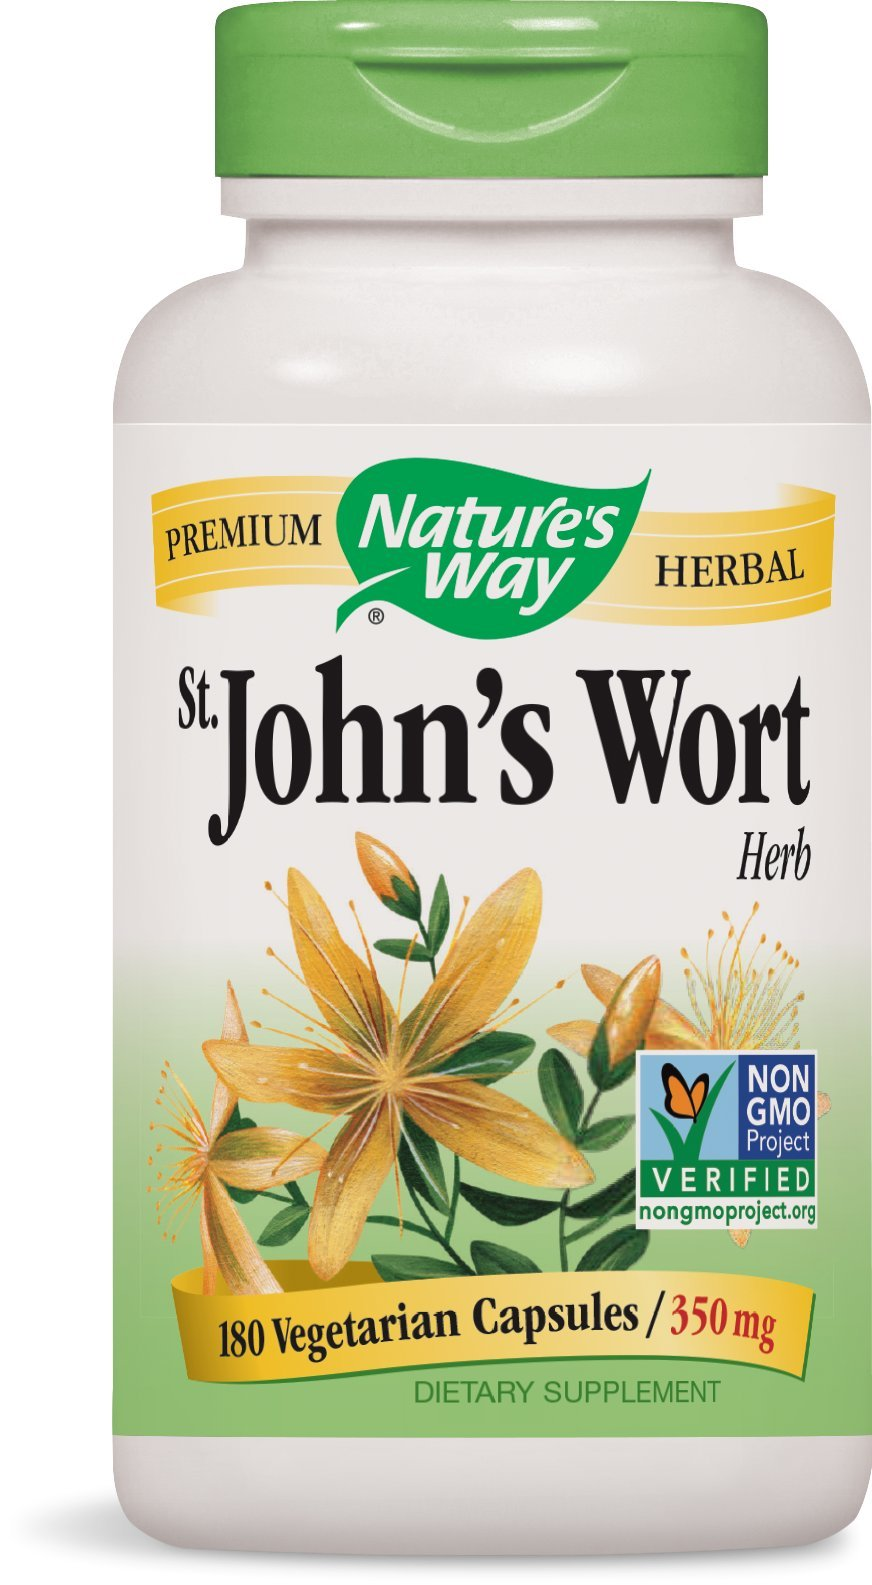 Nature's Way St. John's Wort Herb 350mg, 180 VCaps